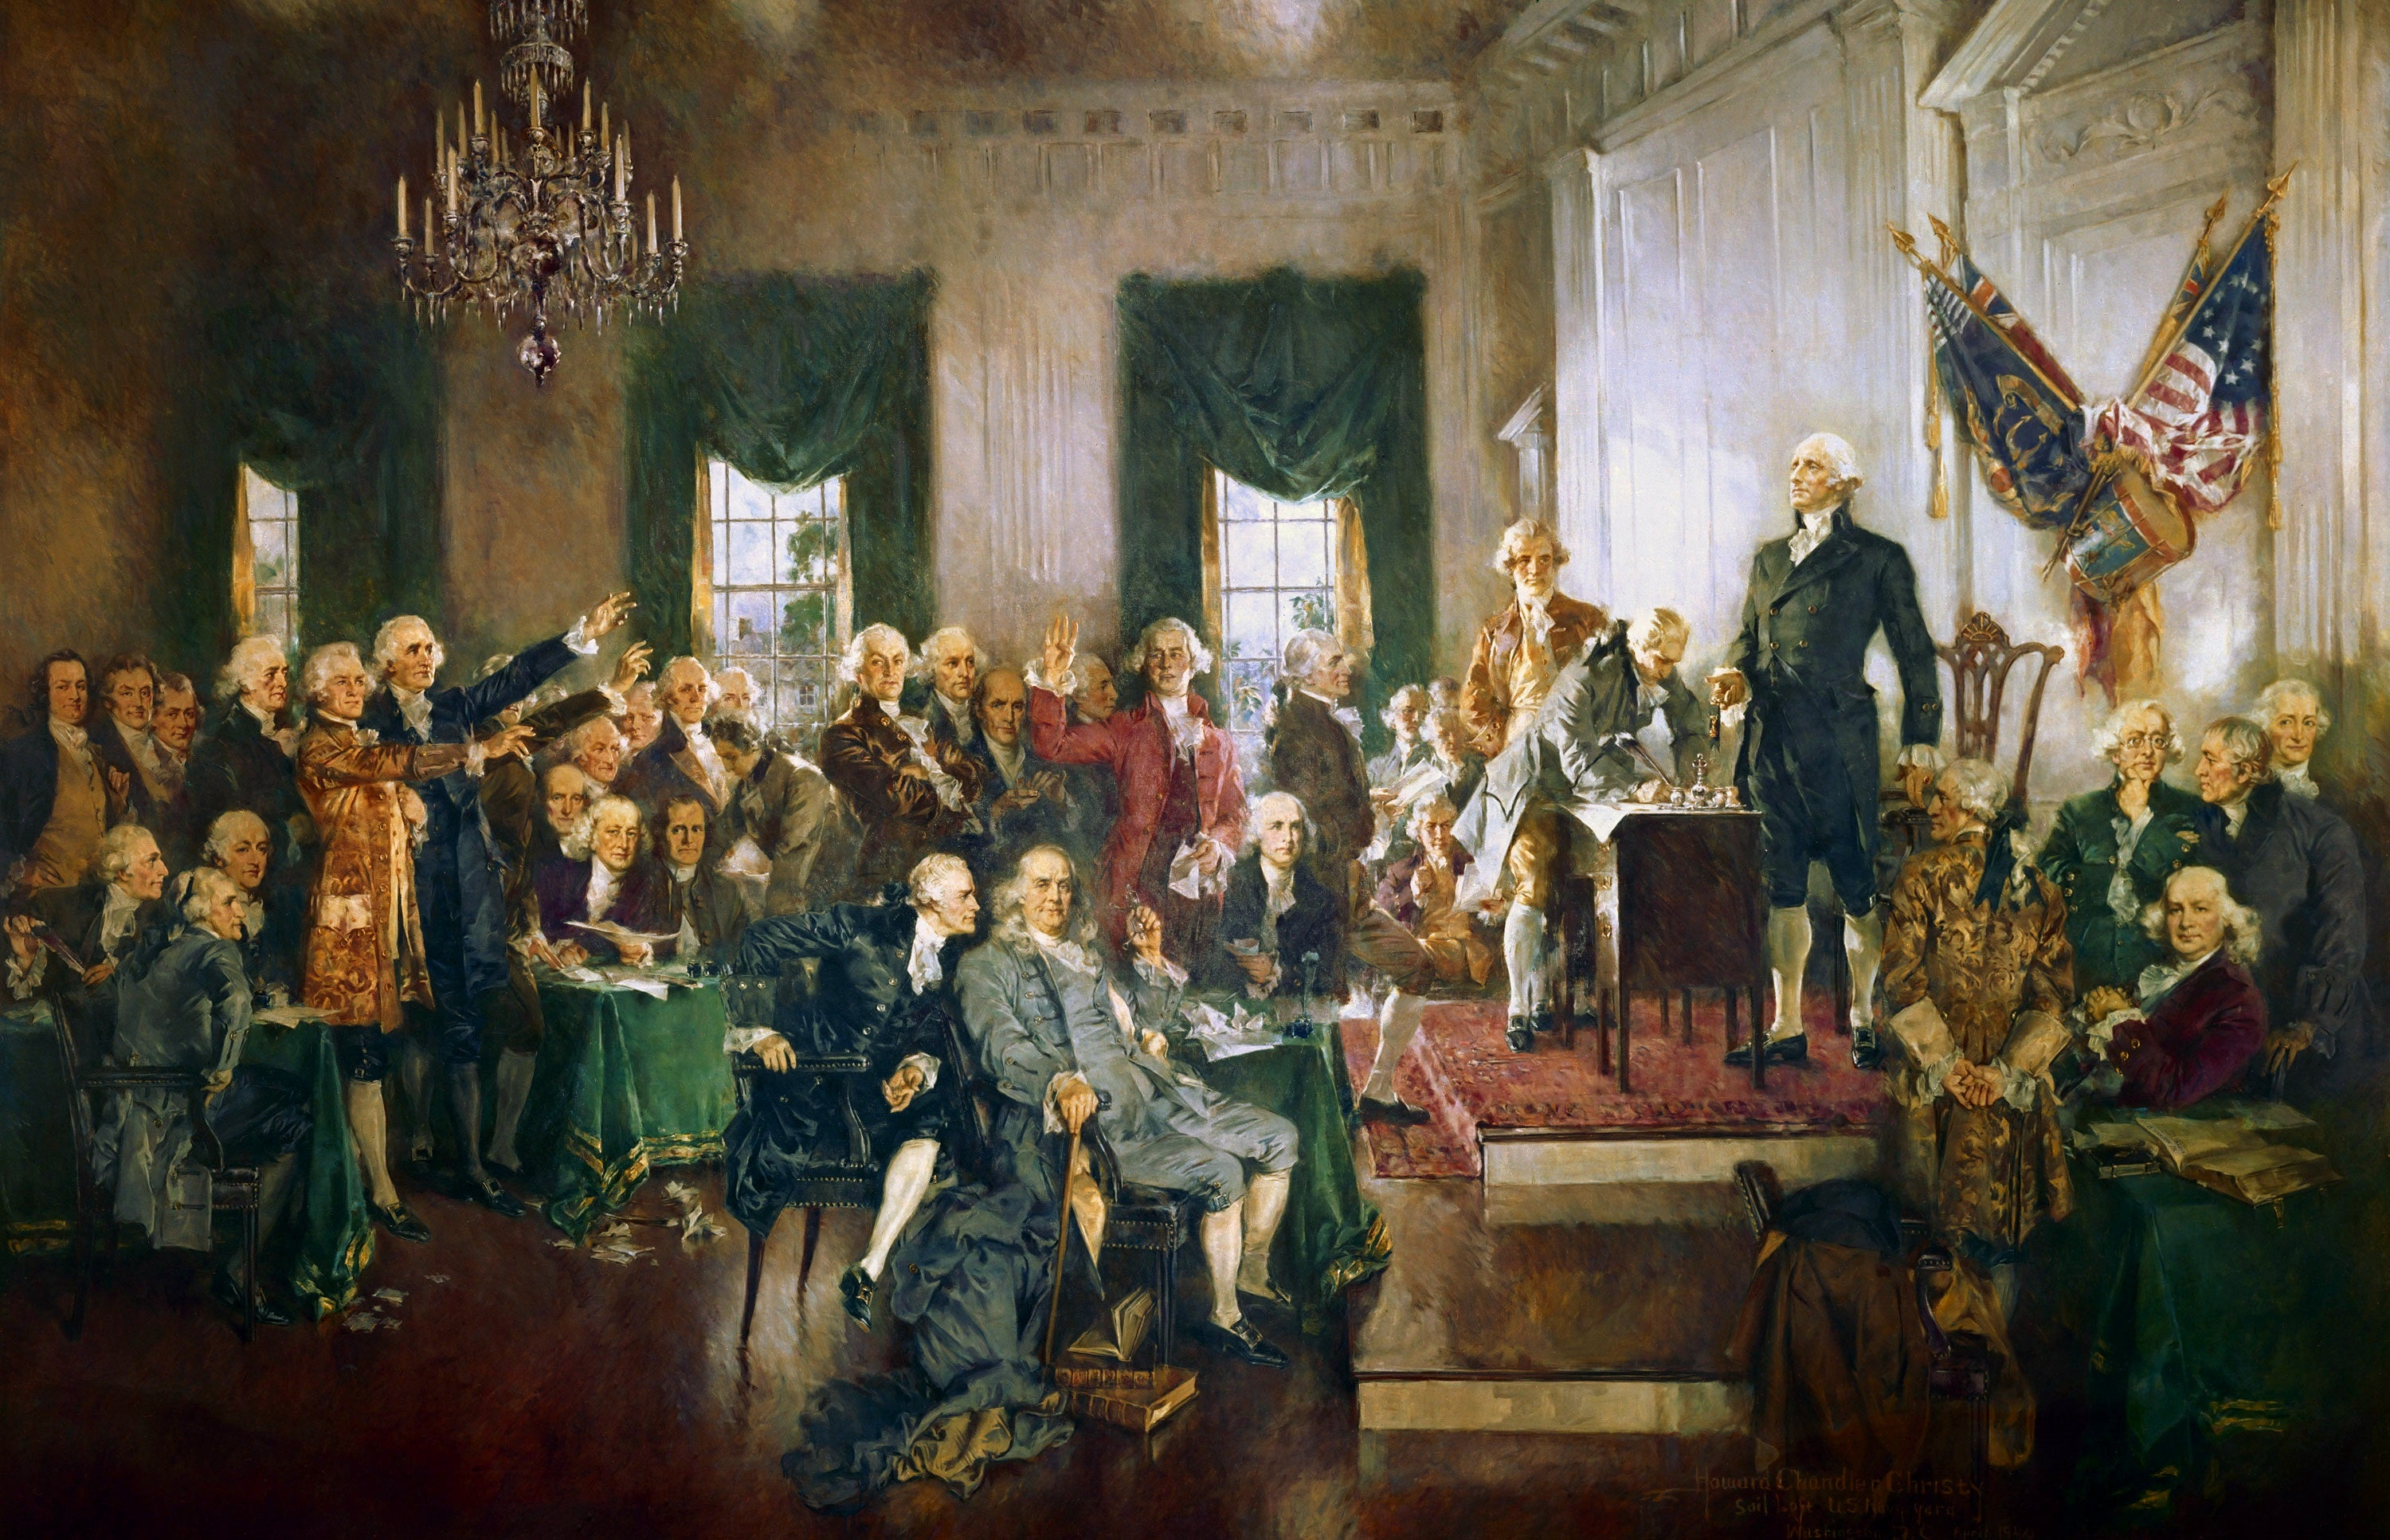 6 quotes about peace from Founding Fathers